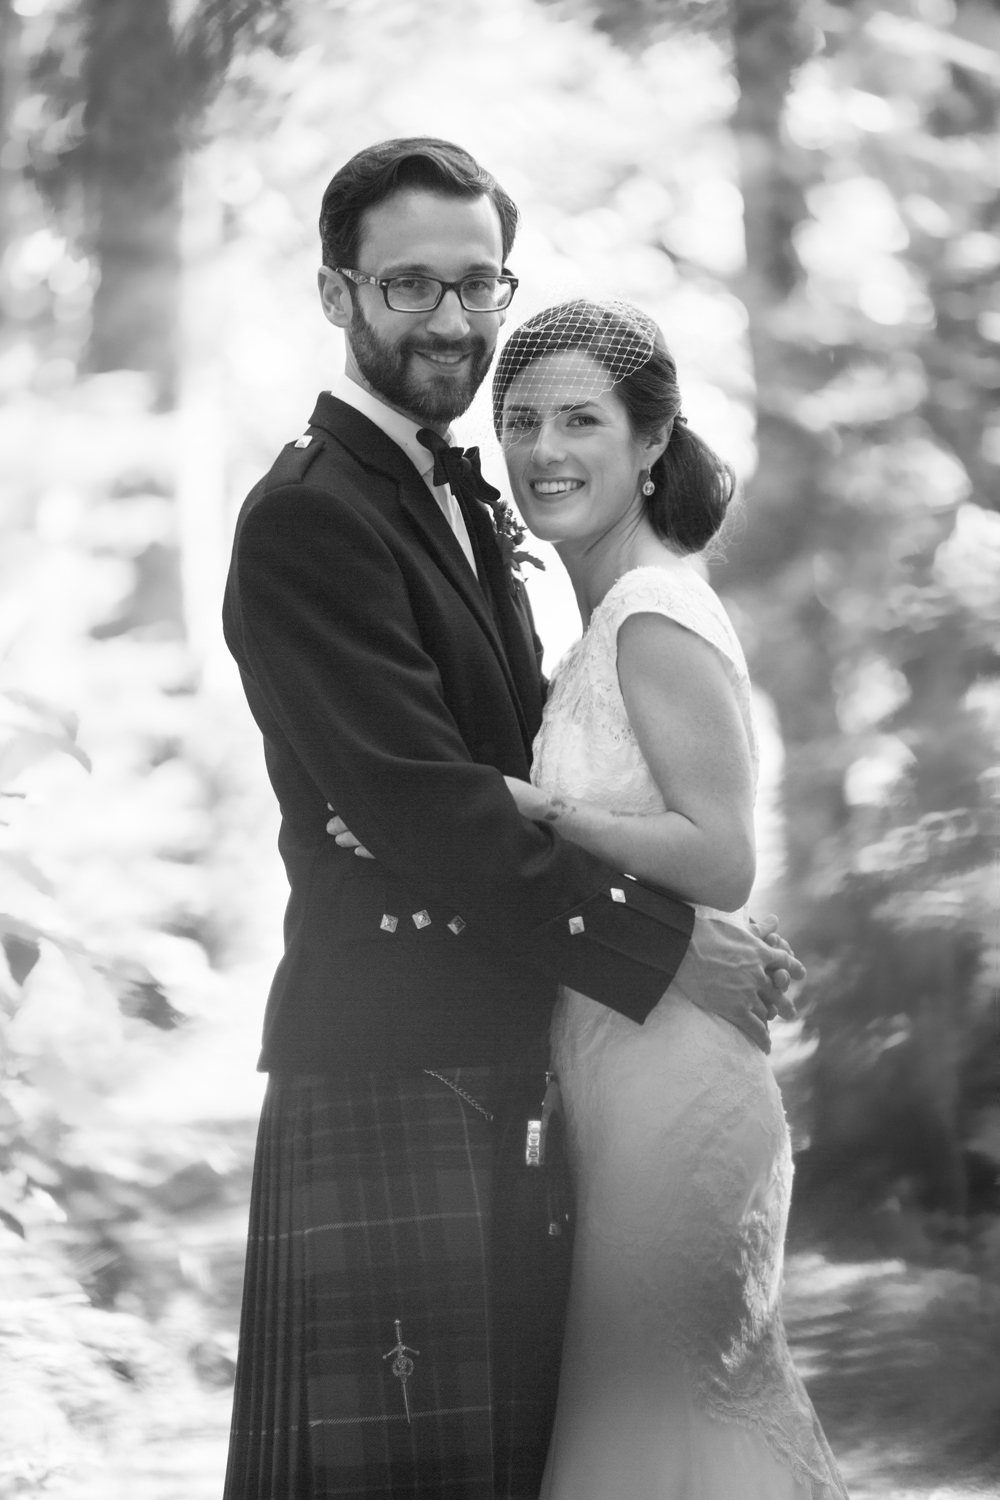 402-nova-scotia-tartan-wedding----- copy.jpg